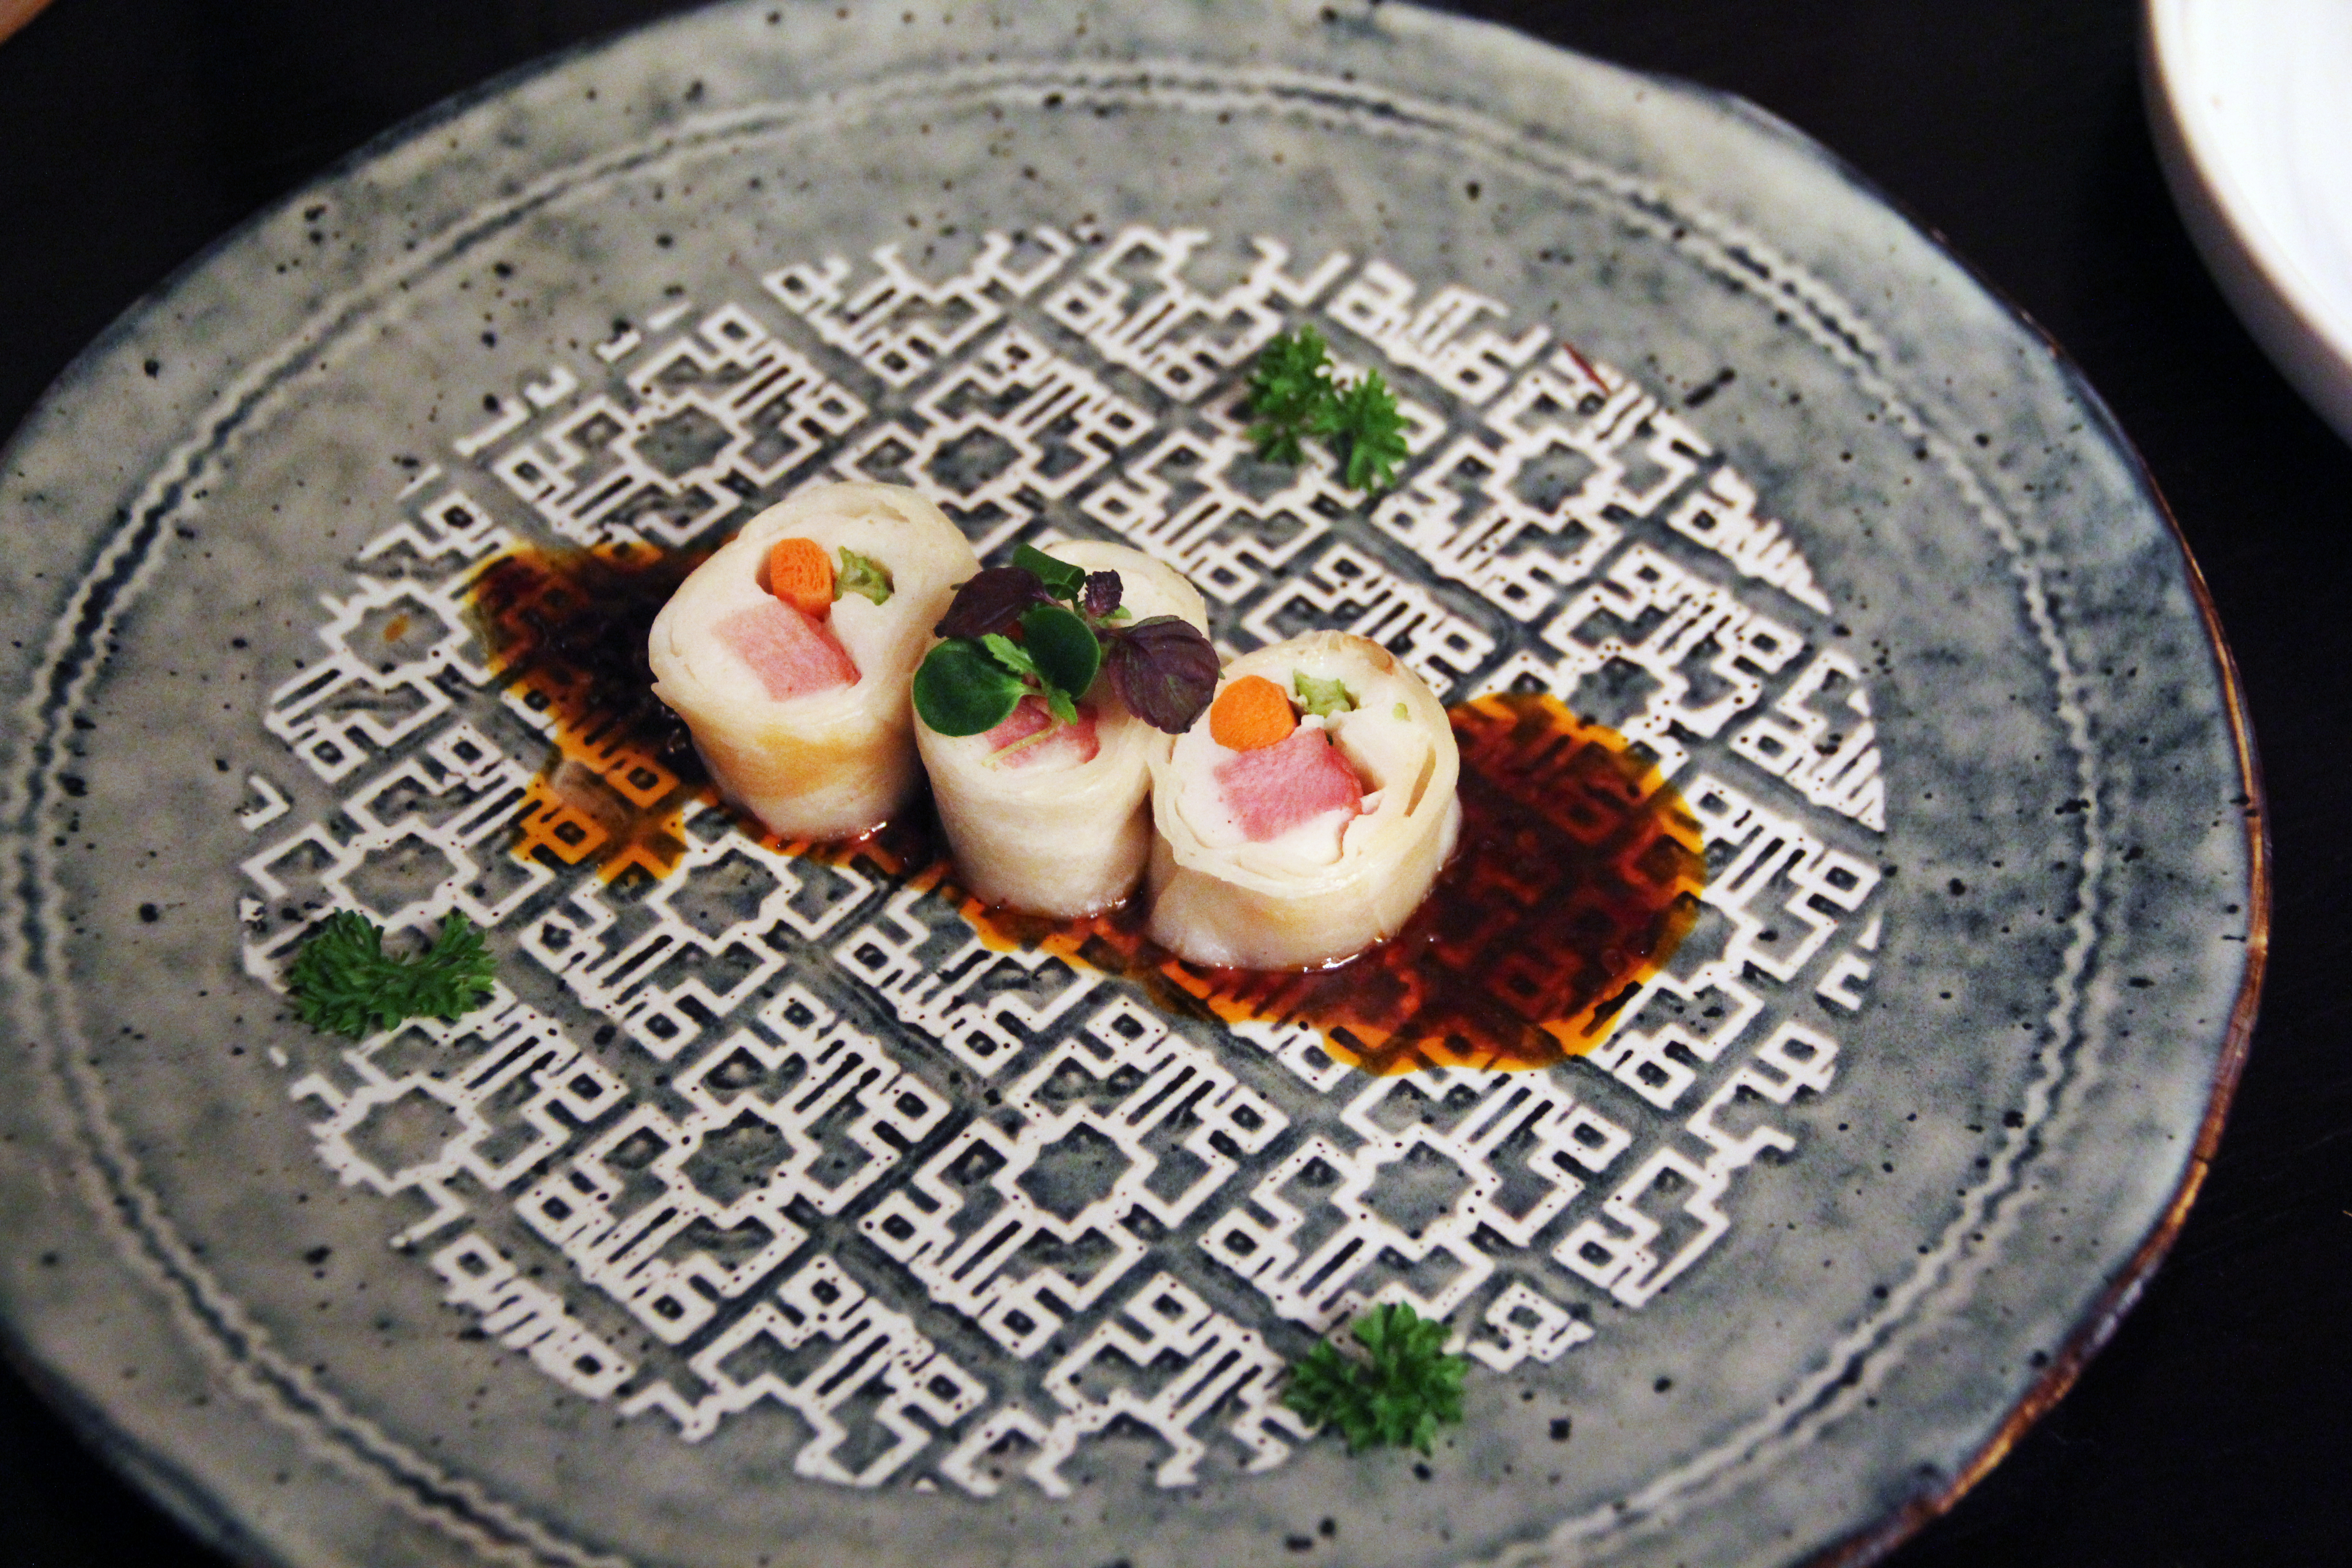 New eats: Pince and Pints, Mercat Barcelona Gastrobar and Tao Chinese Cuisine